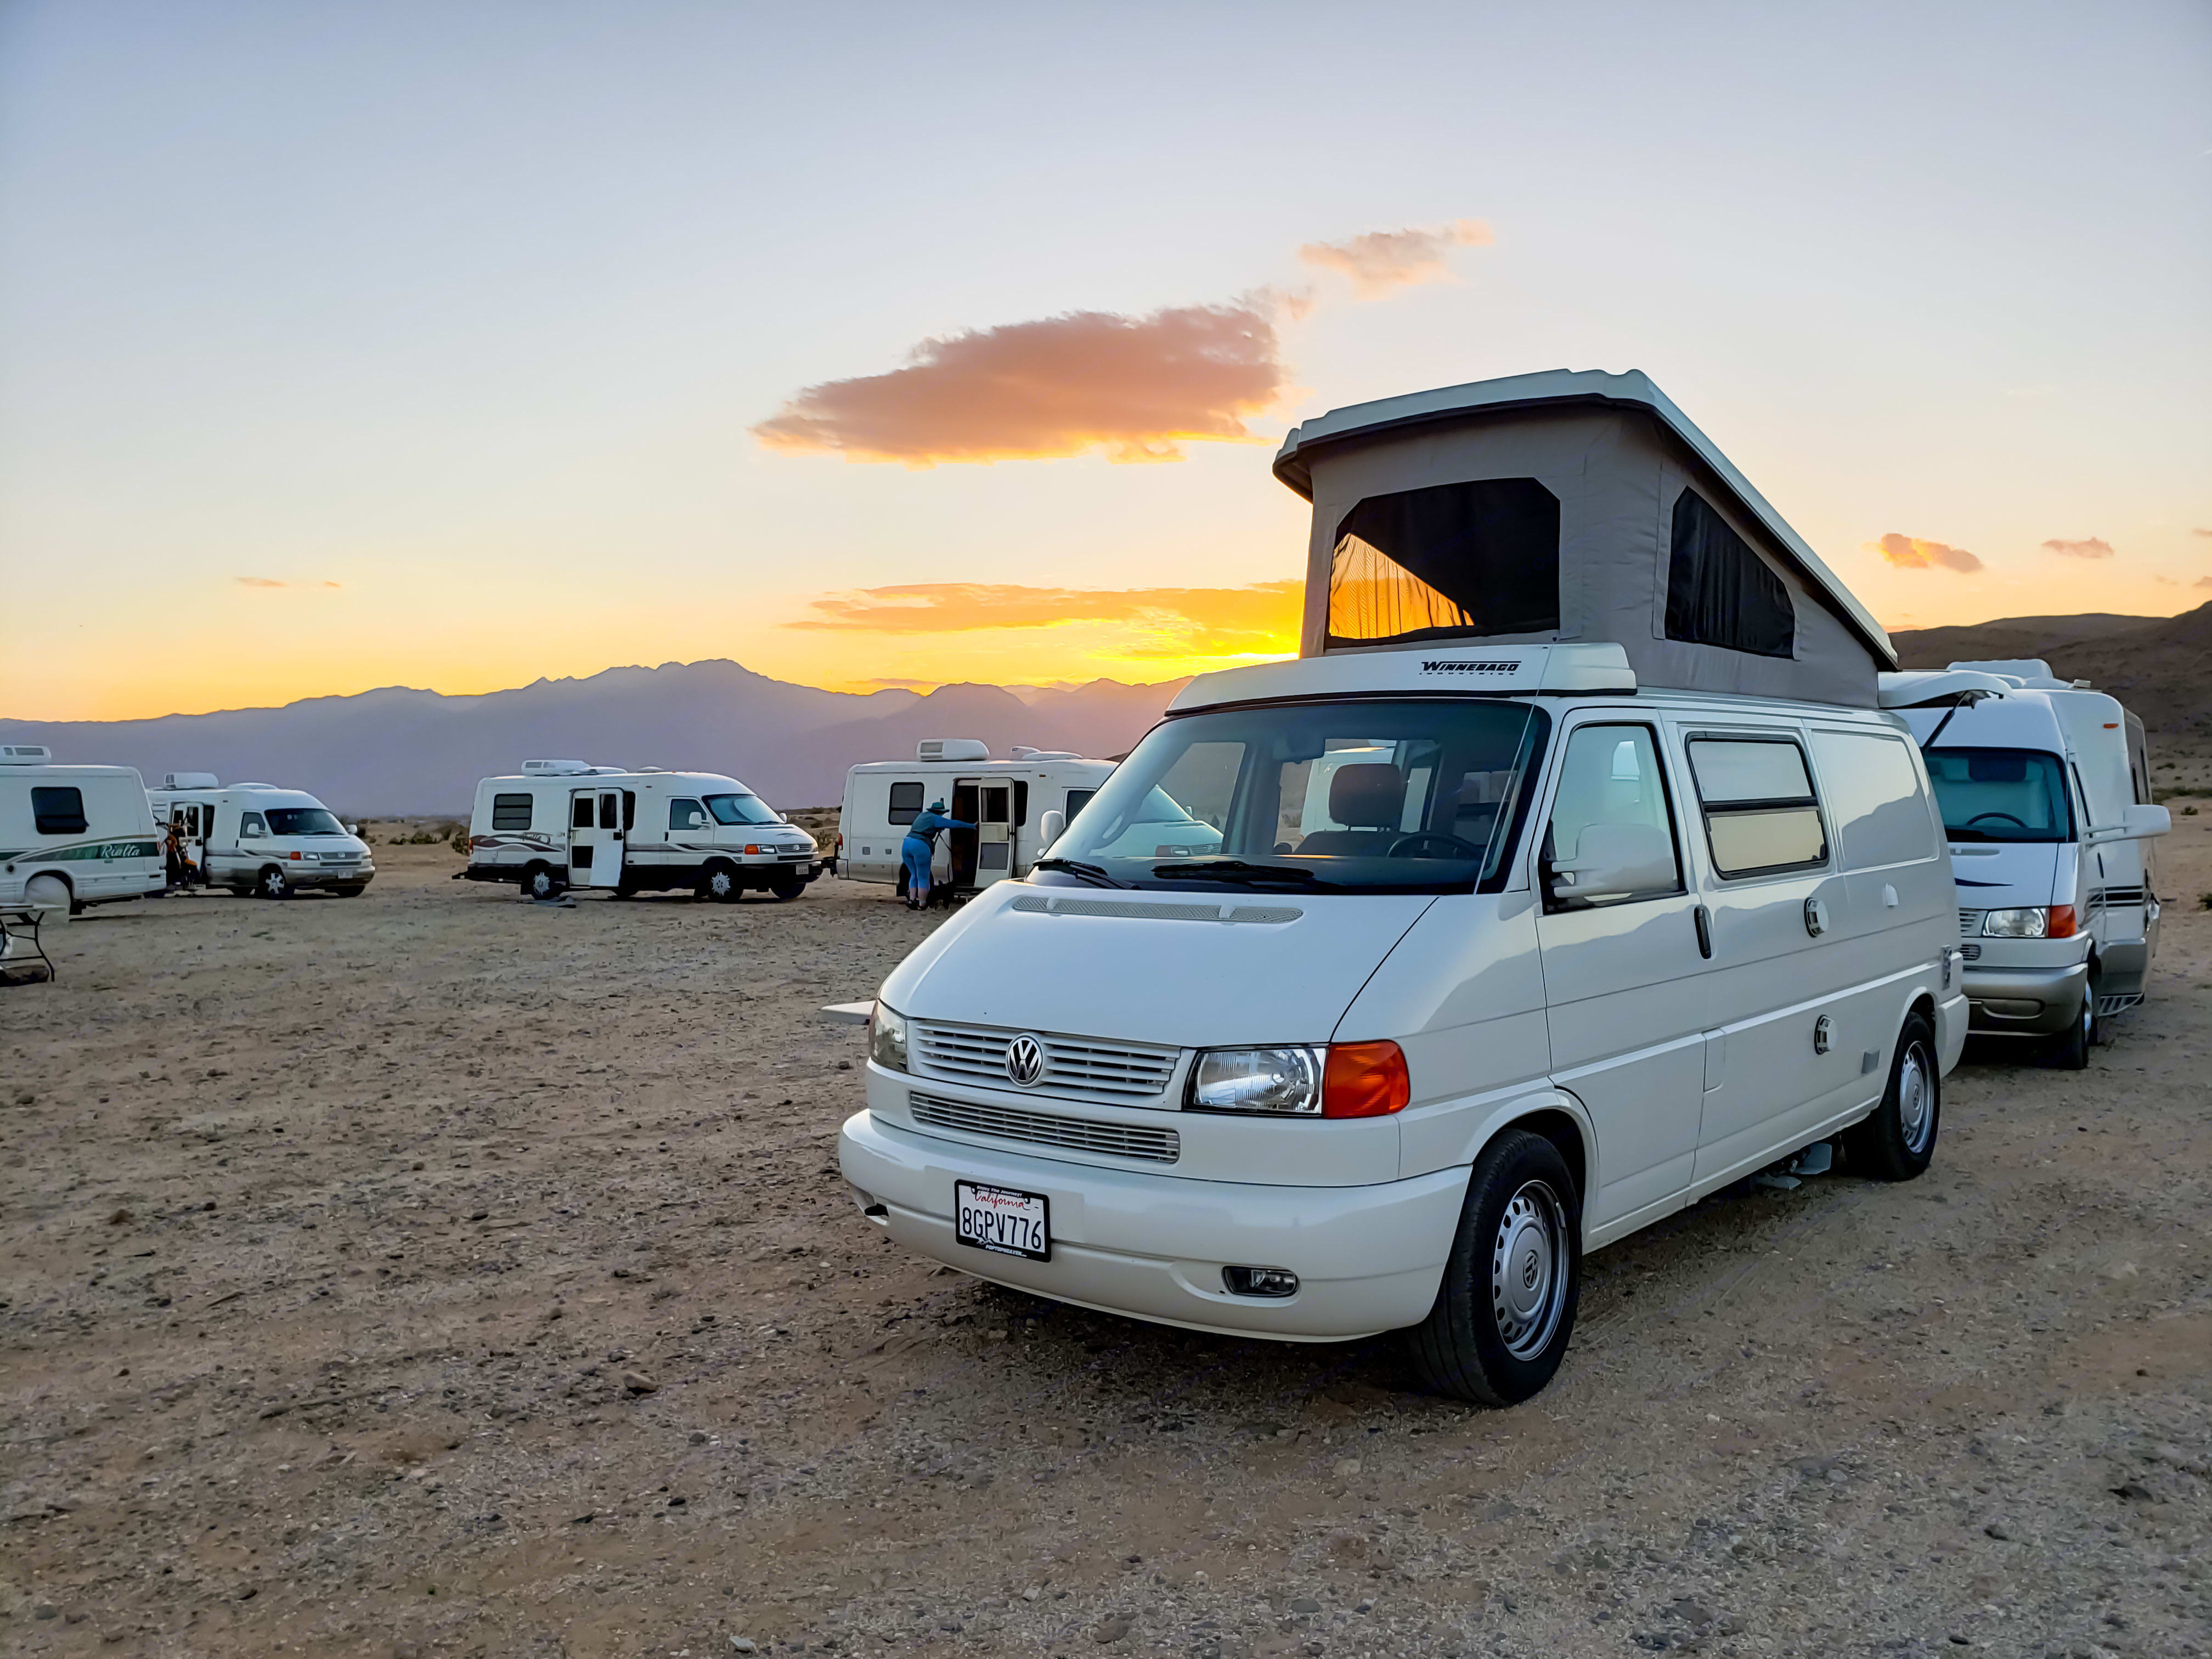 Camping with friends in Anza Borrego Desert State Park, just 2 hours south of Pop Top Heaven. Volkswagen Eurovan Camper 2003